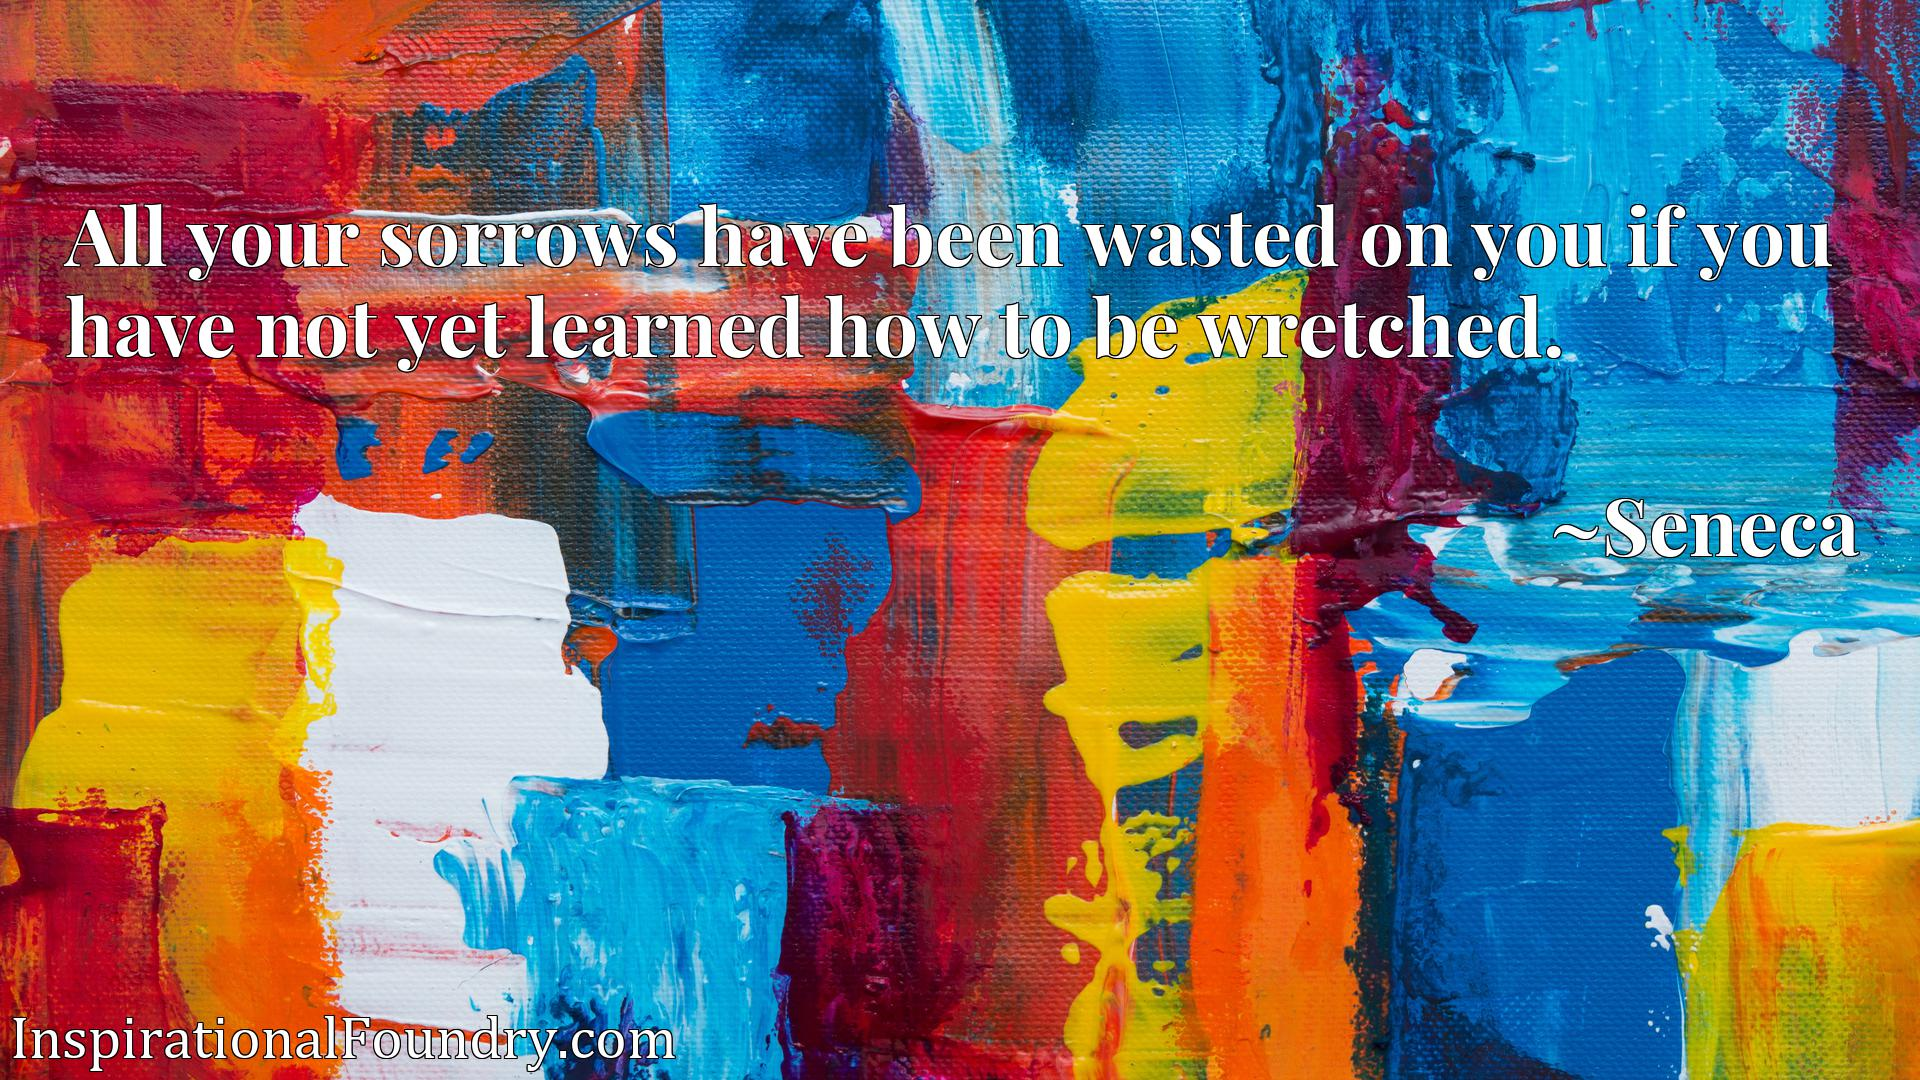 All your sorrows have been wasted on you if you have not yet learned how to be wretched.